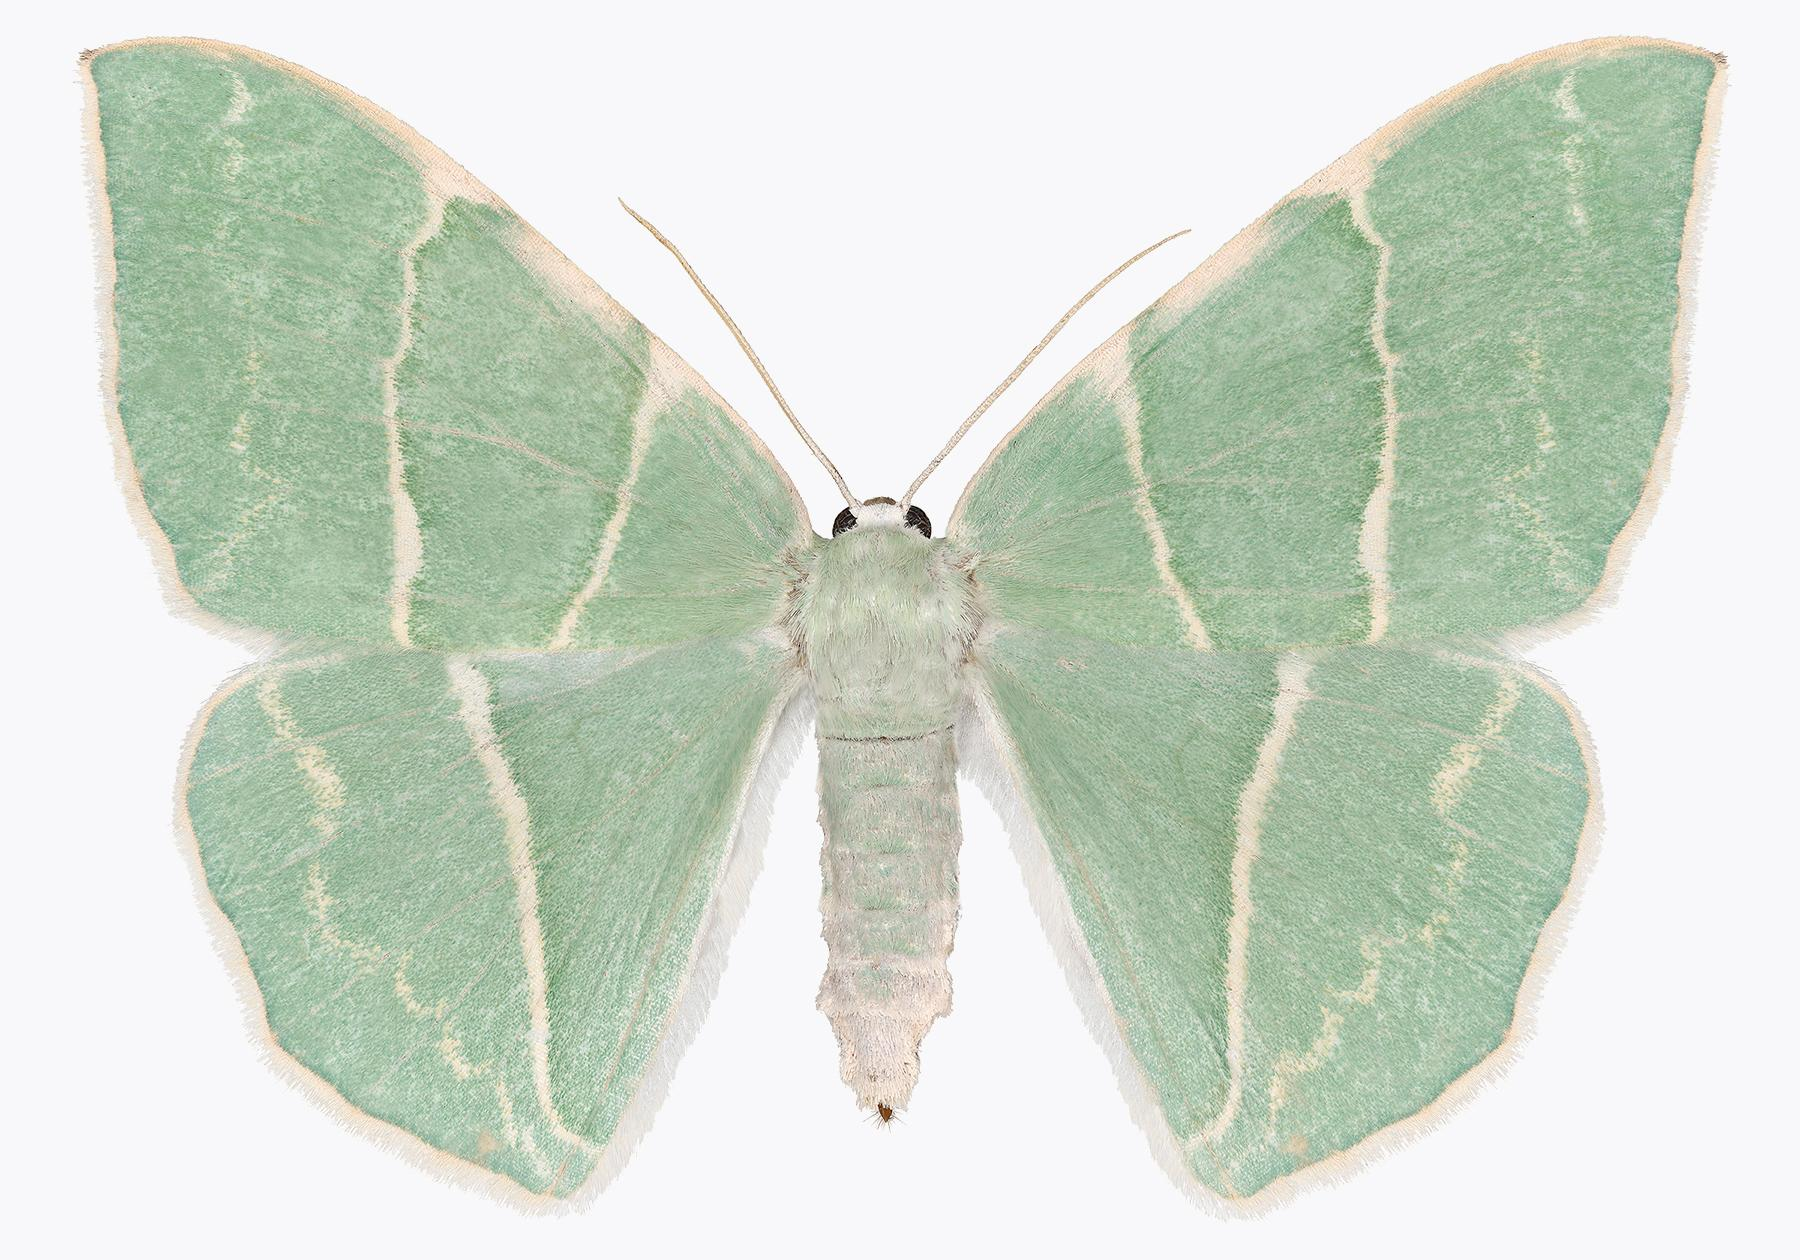 Geometra Glaucaria, Nature Photograph of Light Green, Ivory Moth on White